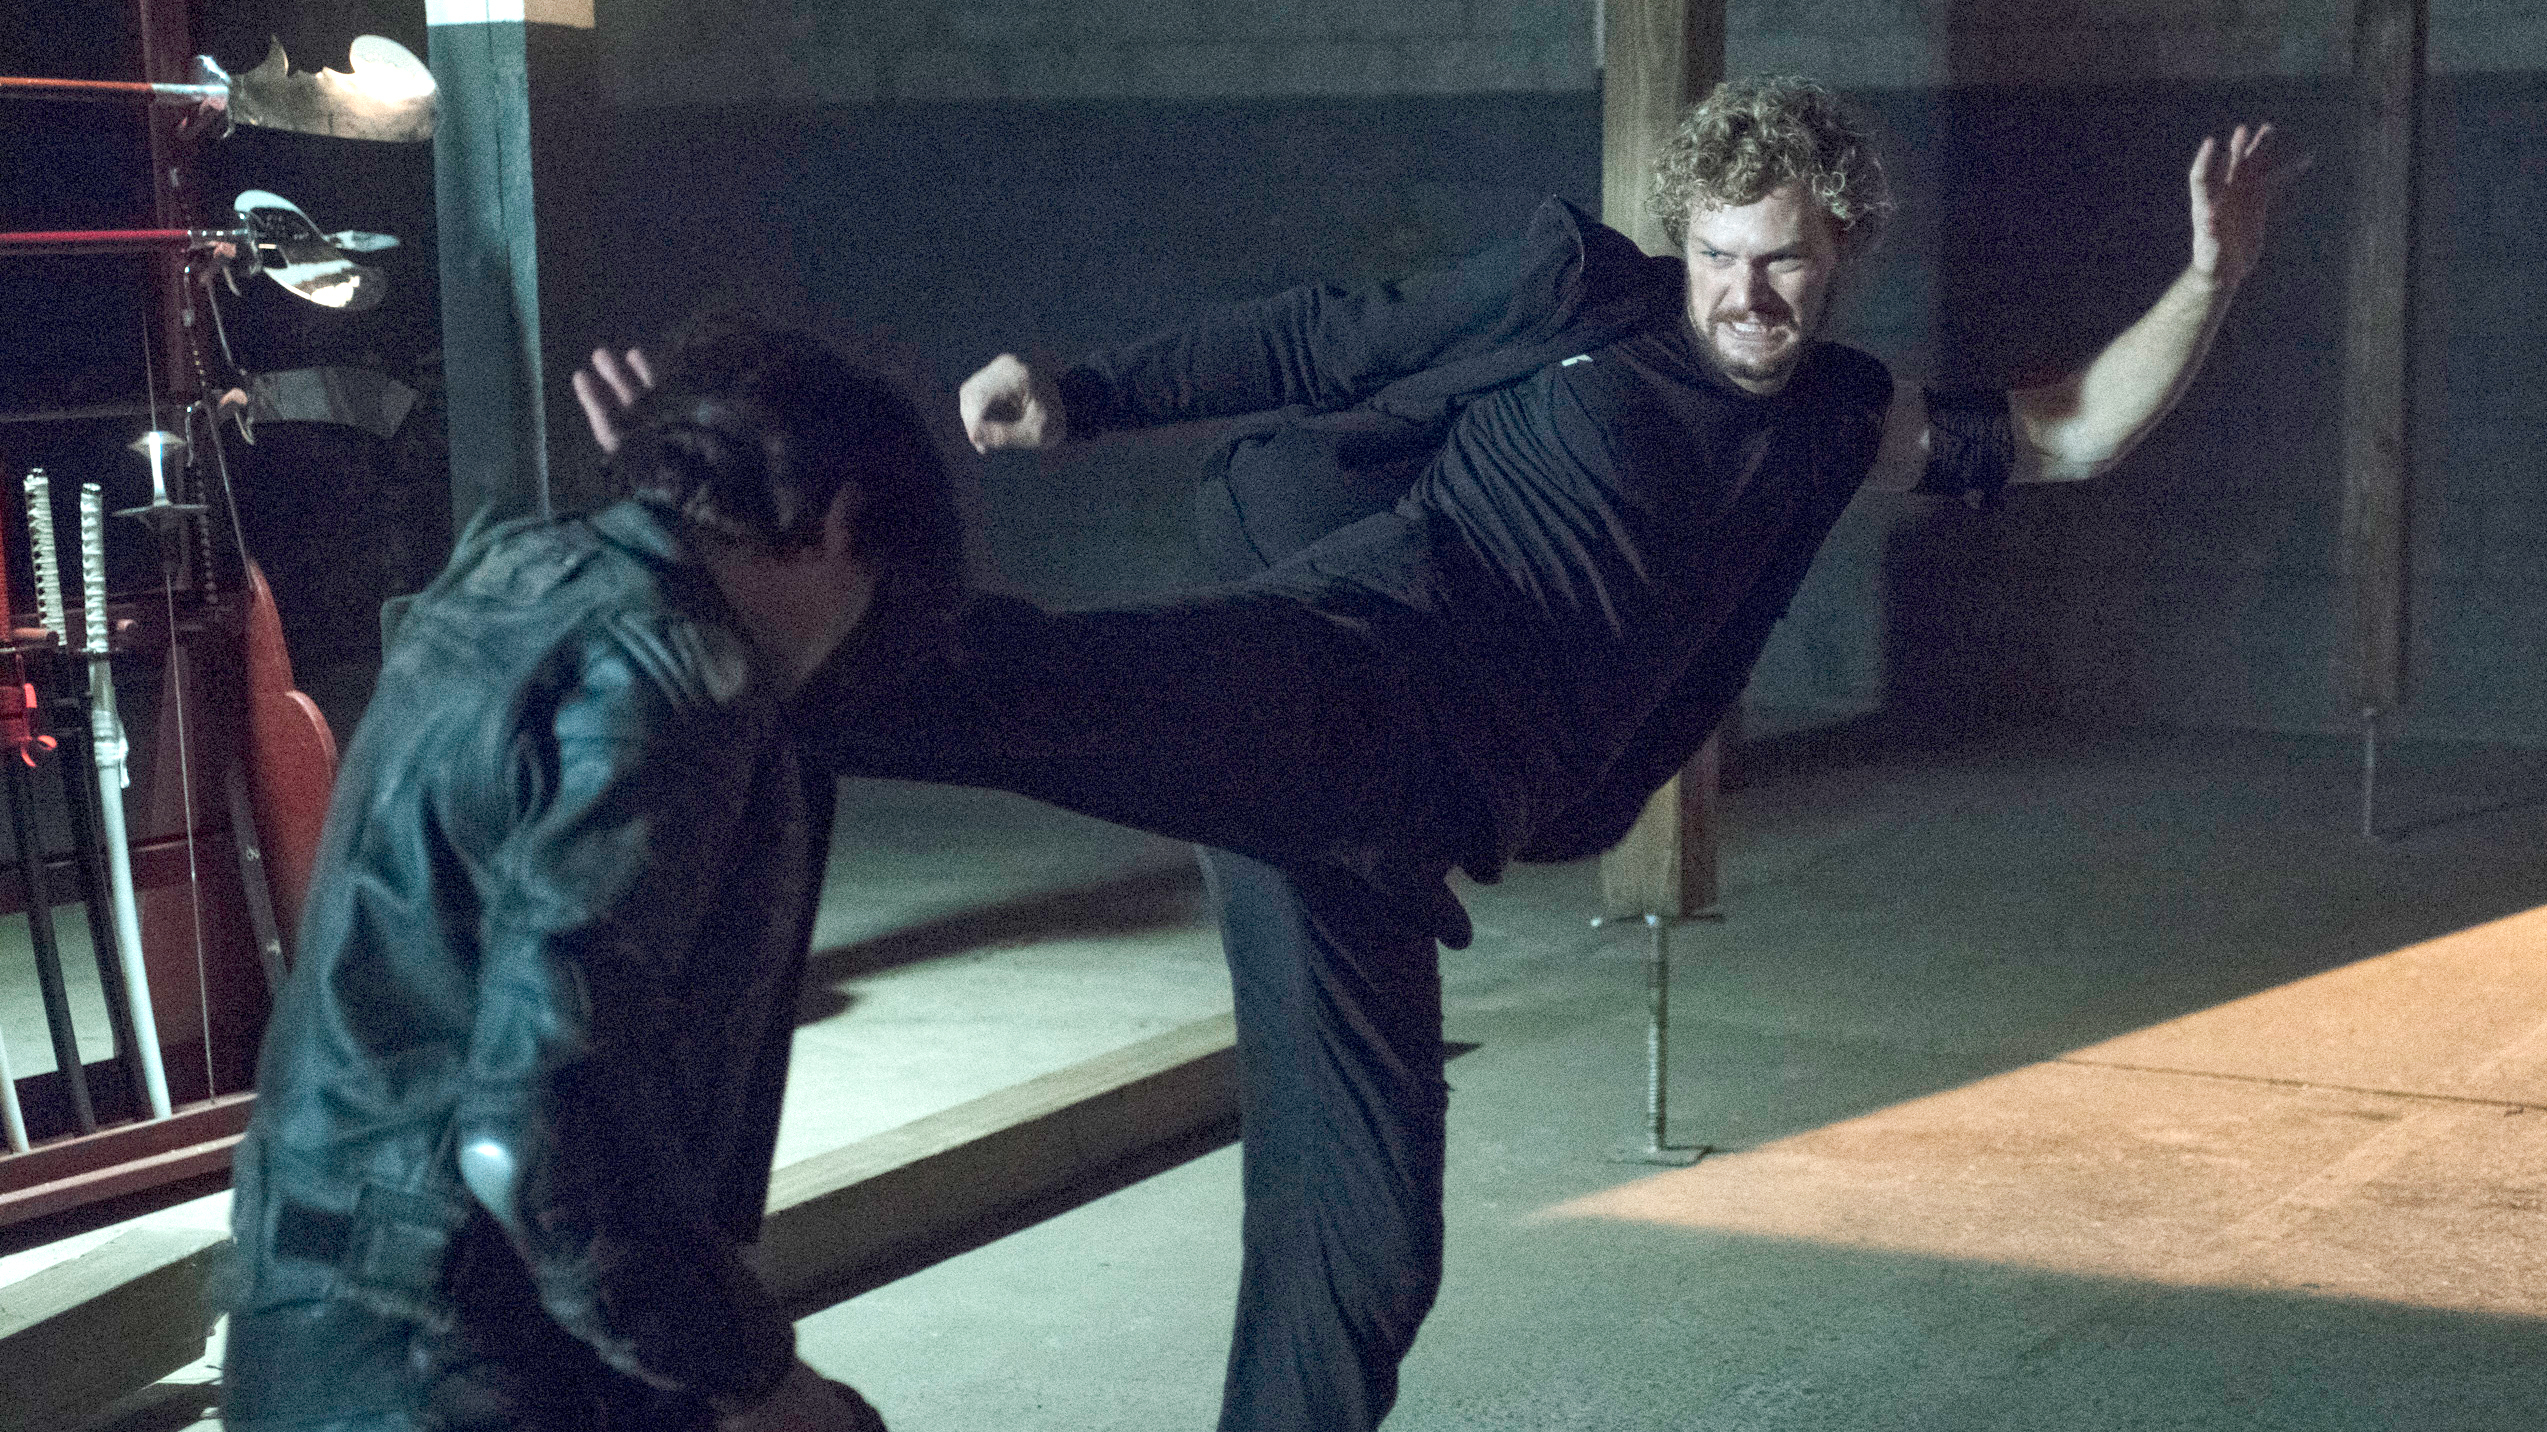 'Iron Fist': Why Netflix's New Marvel Show Is a Kick in the Head